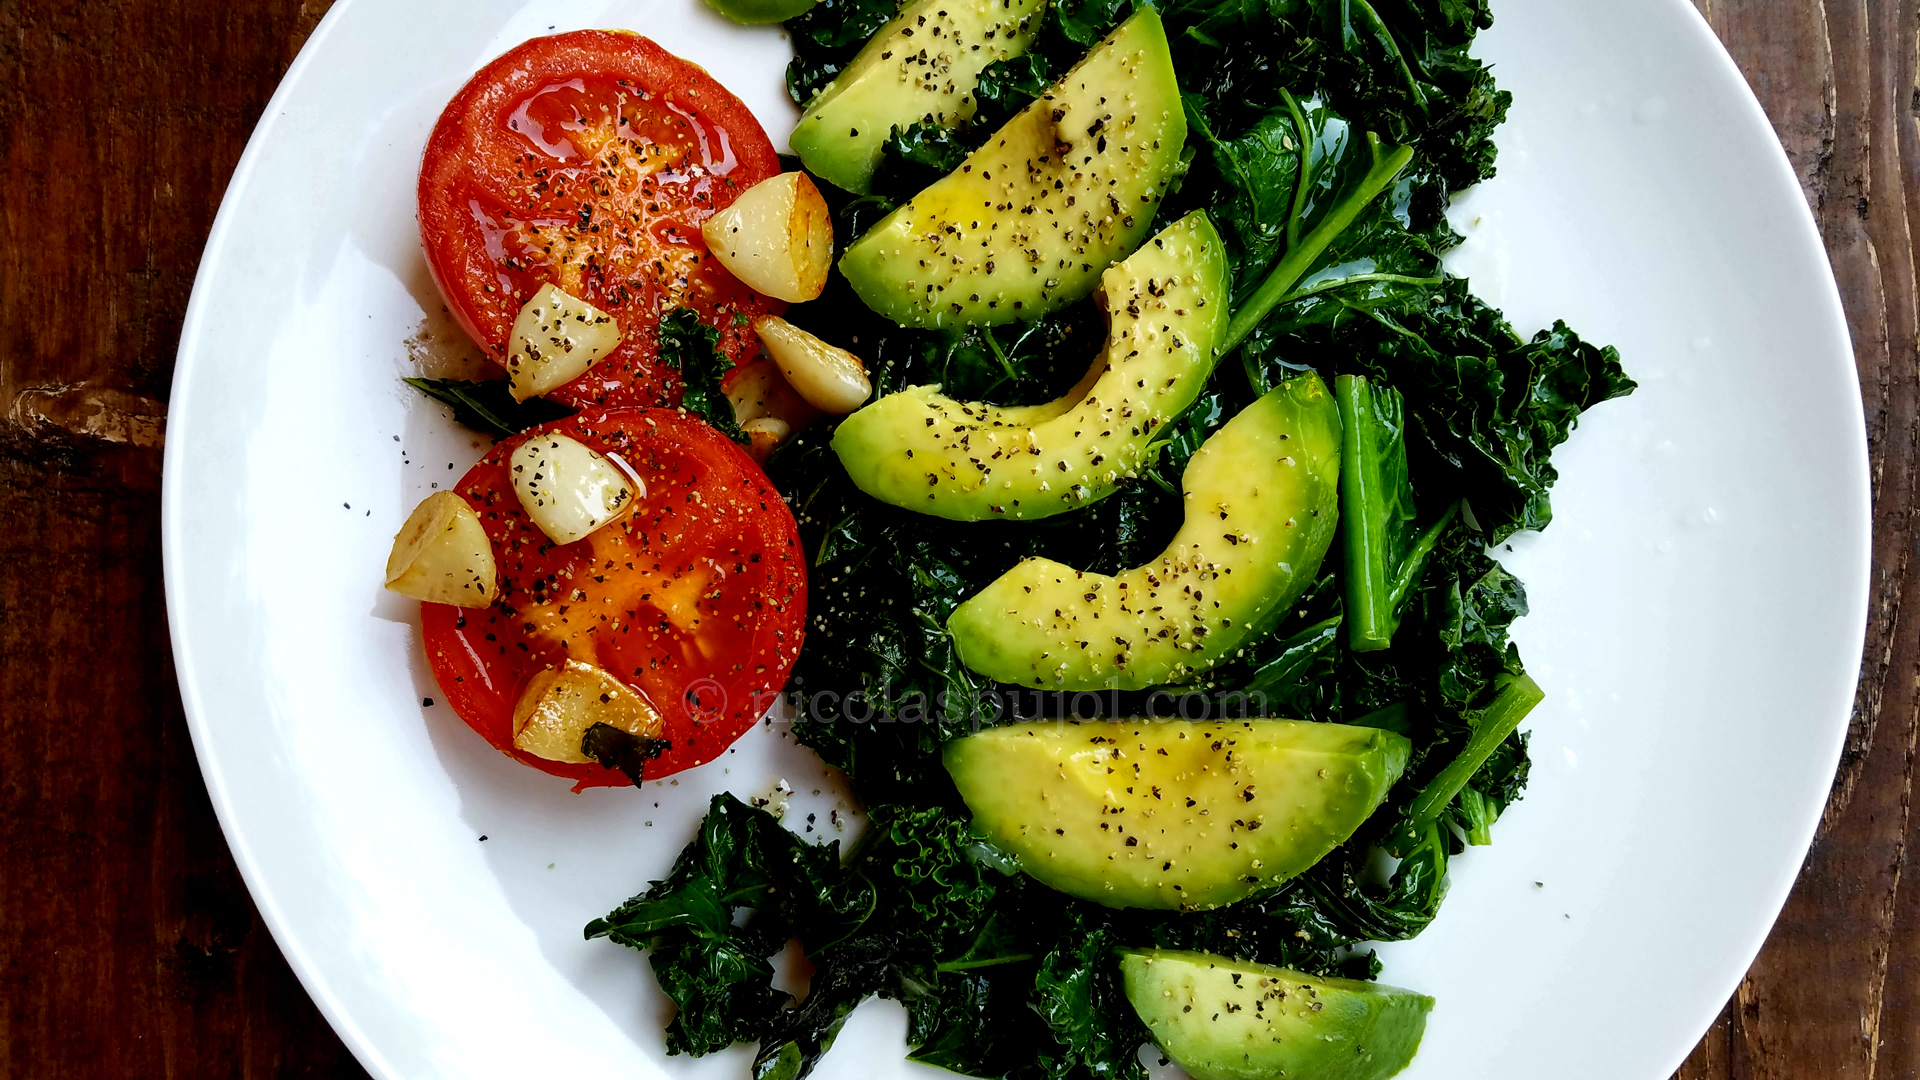 Seared kale and tomato with avocado olive oil and lemon